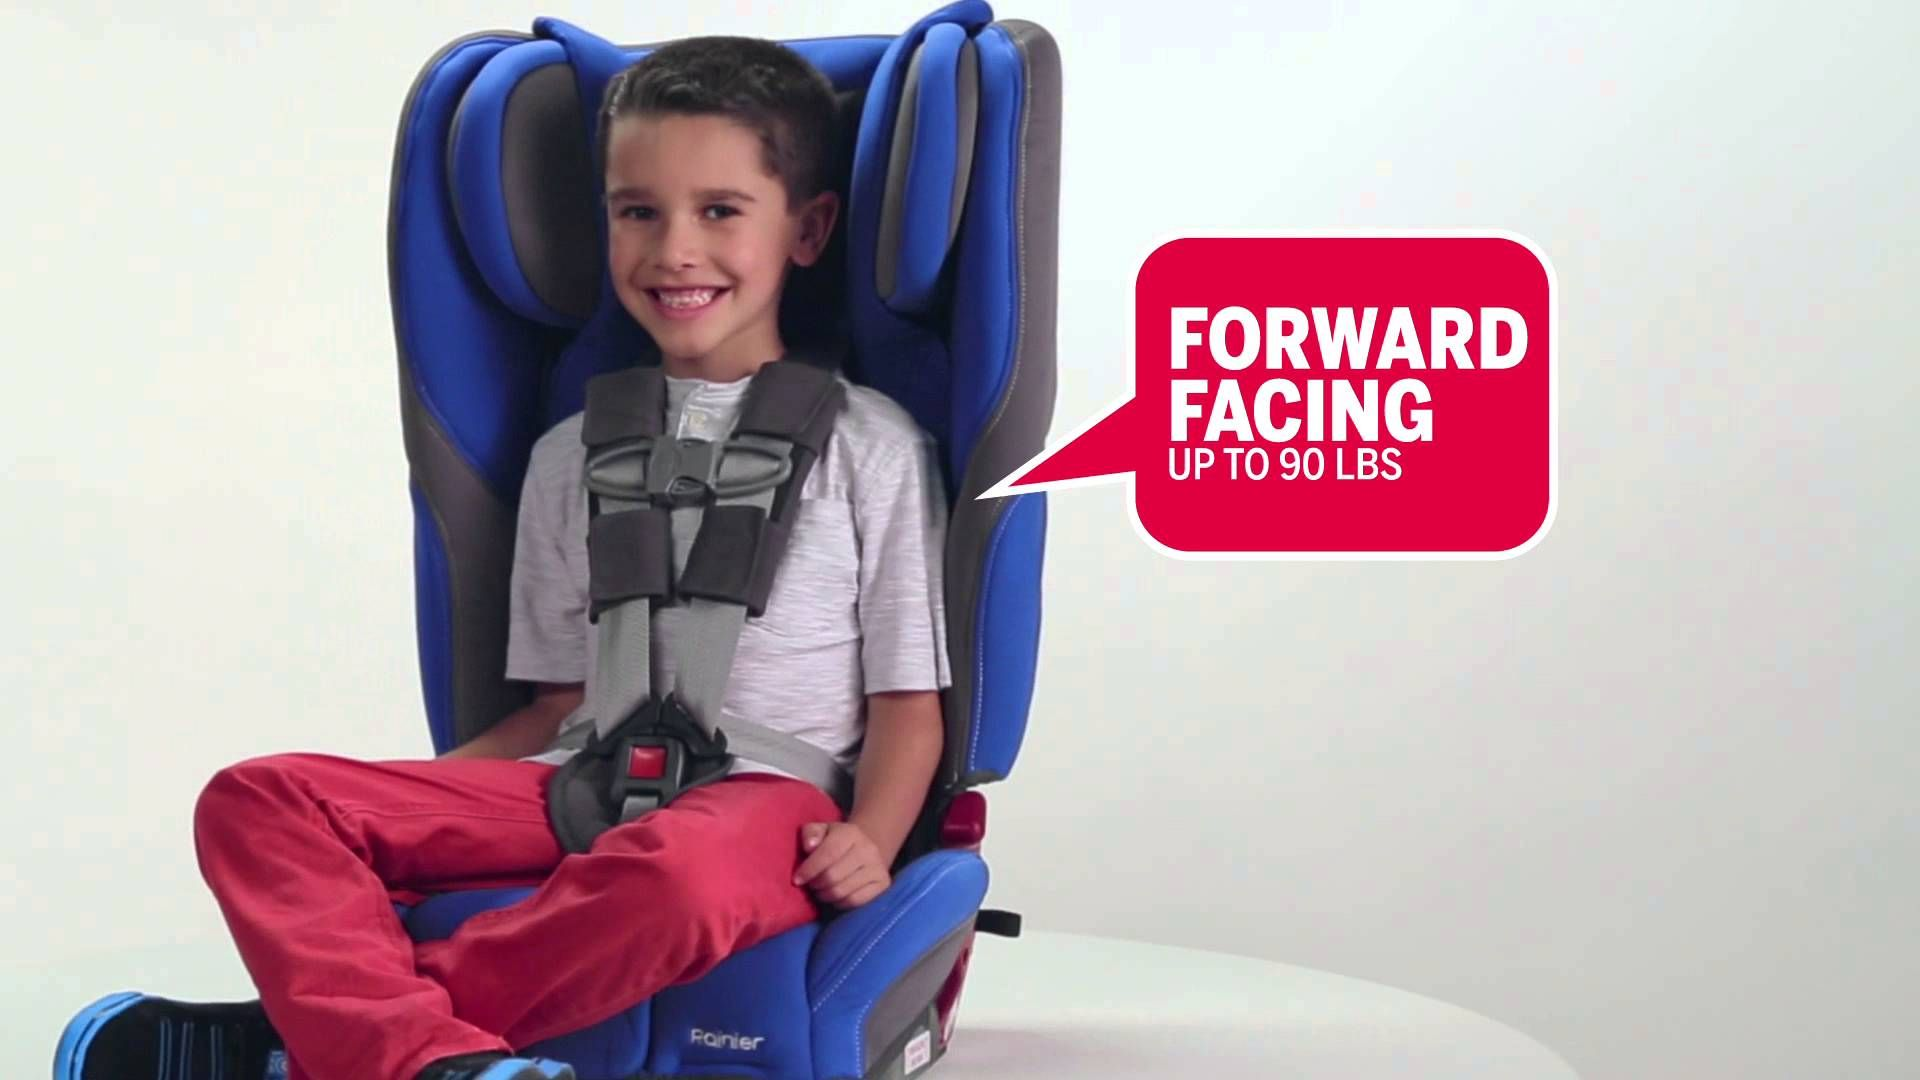 Meet the new Diono Rainier Convertible+Booster car seat!